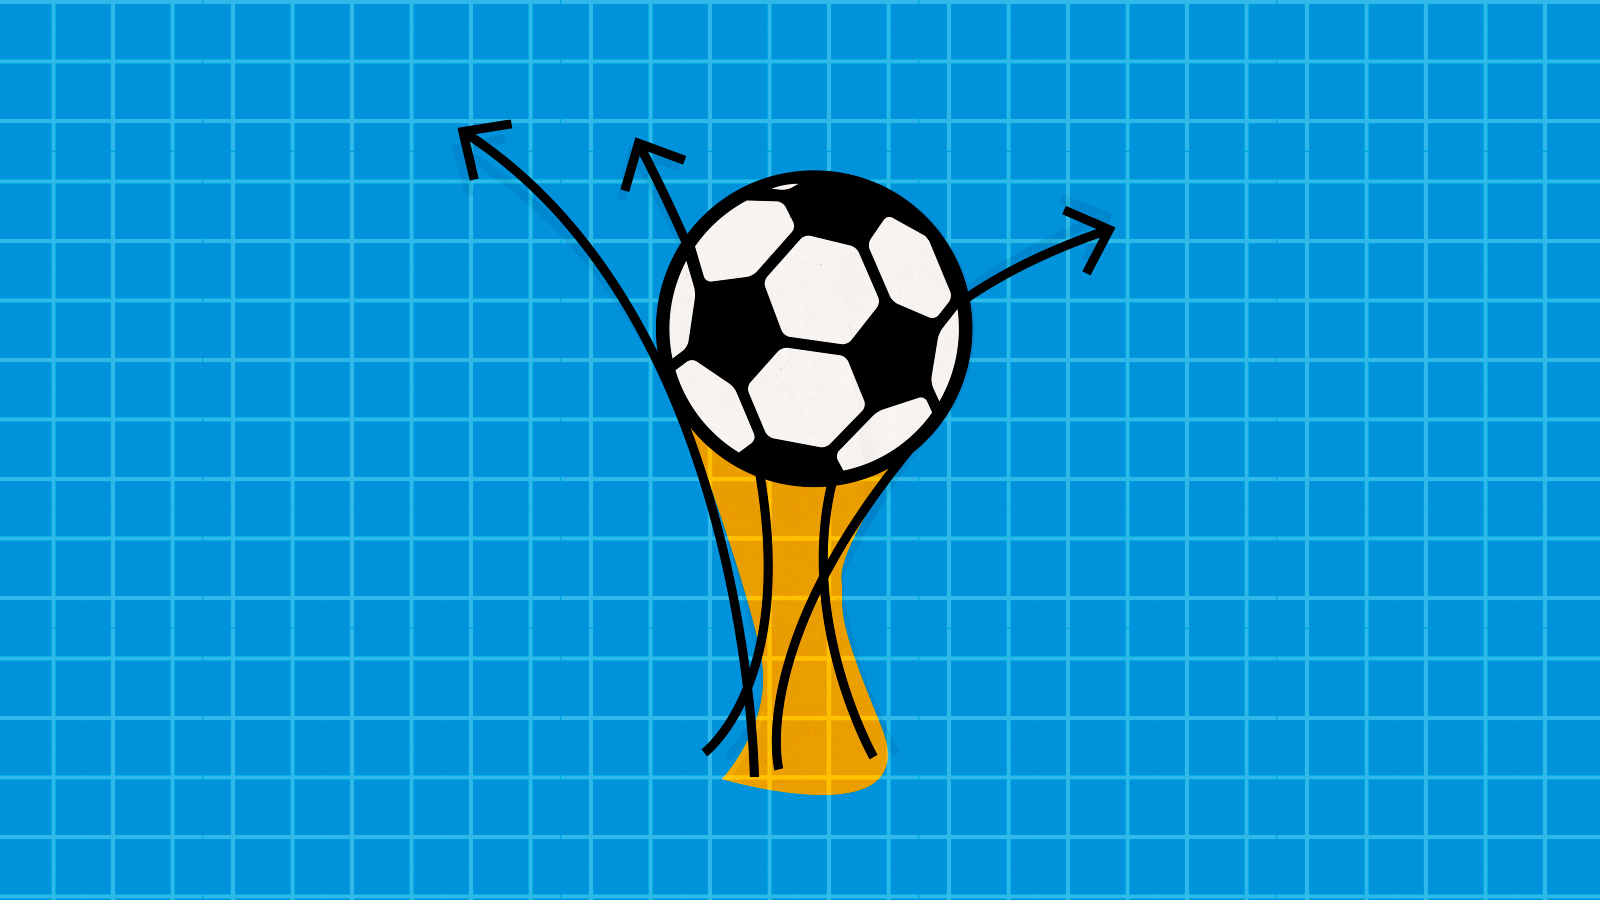 2018 World Cup Predictions | FiveThirtyEight